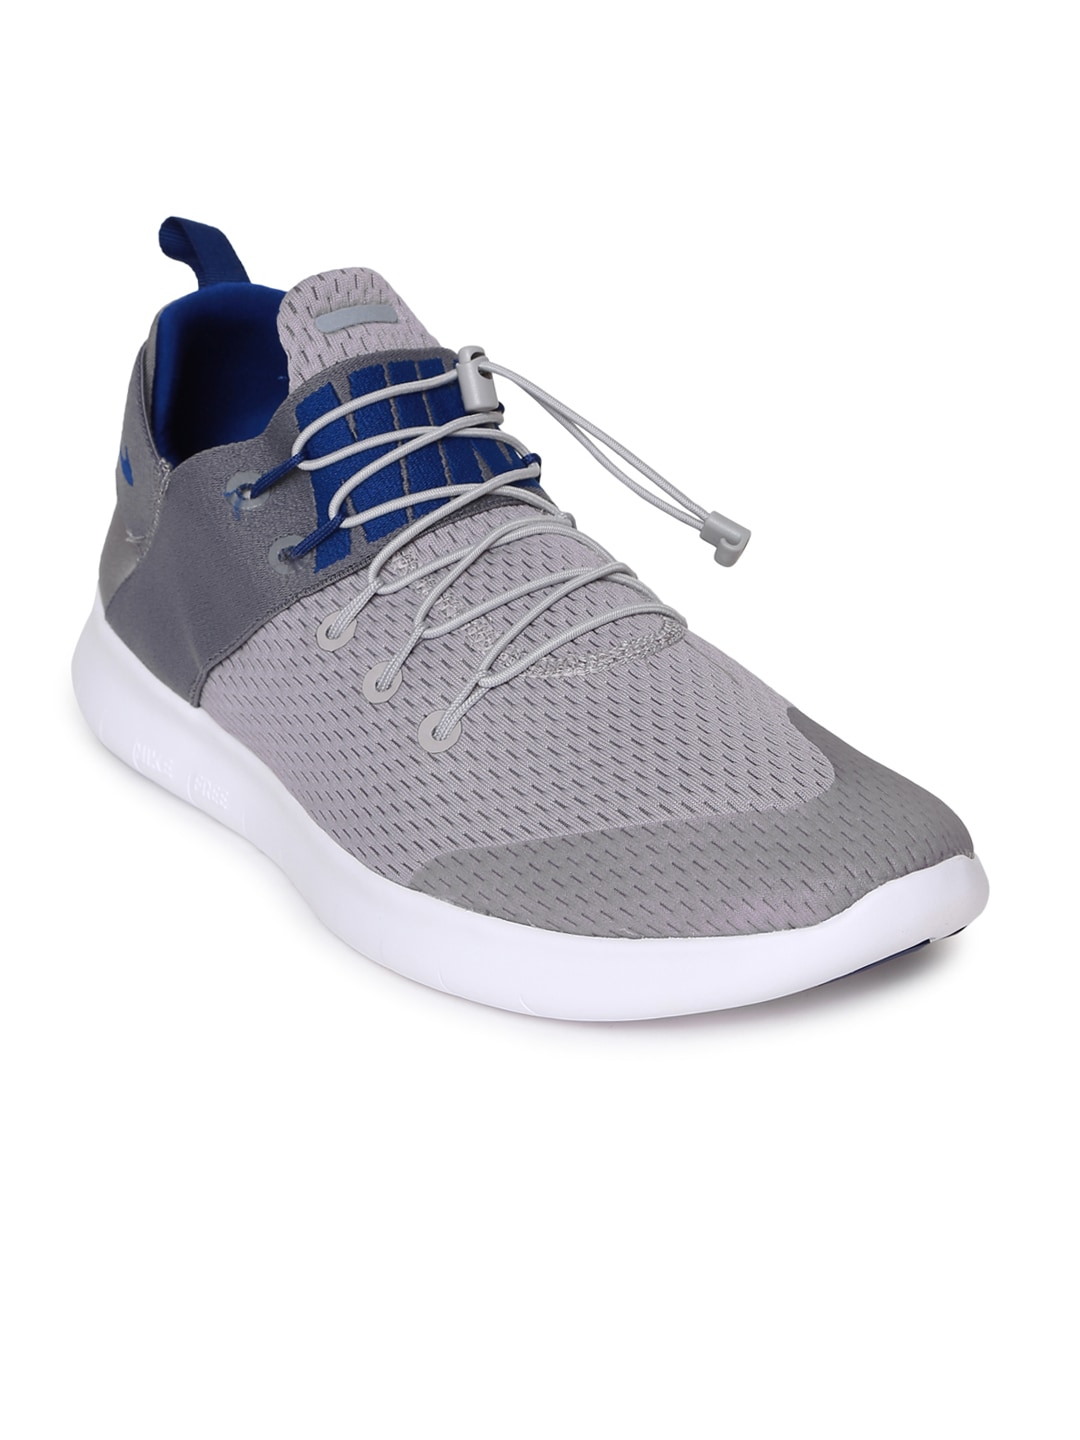 527ee96a745dc Nike Free Running - Buy Nike Free Running online in India